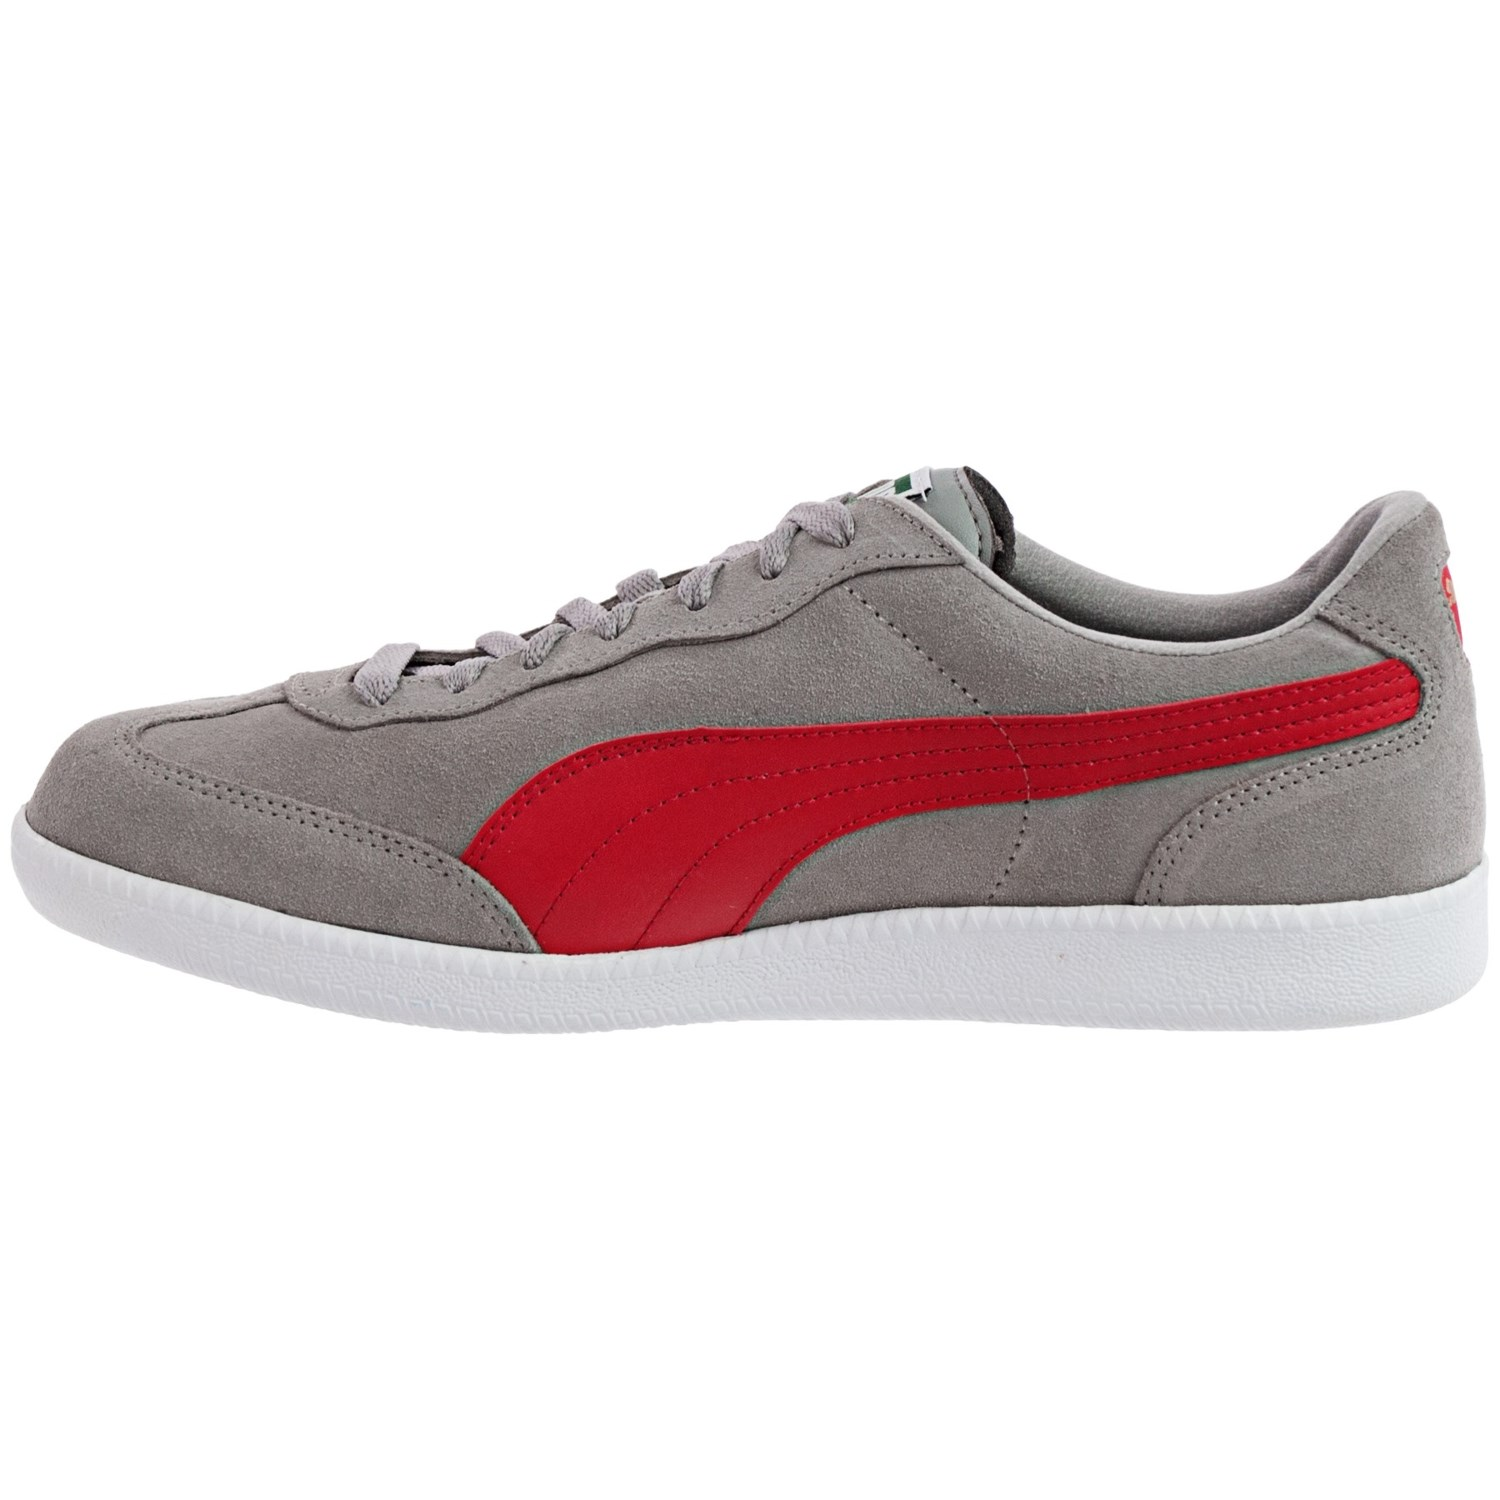 sneakers shoes for men - DriverLayer Search Engine